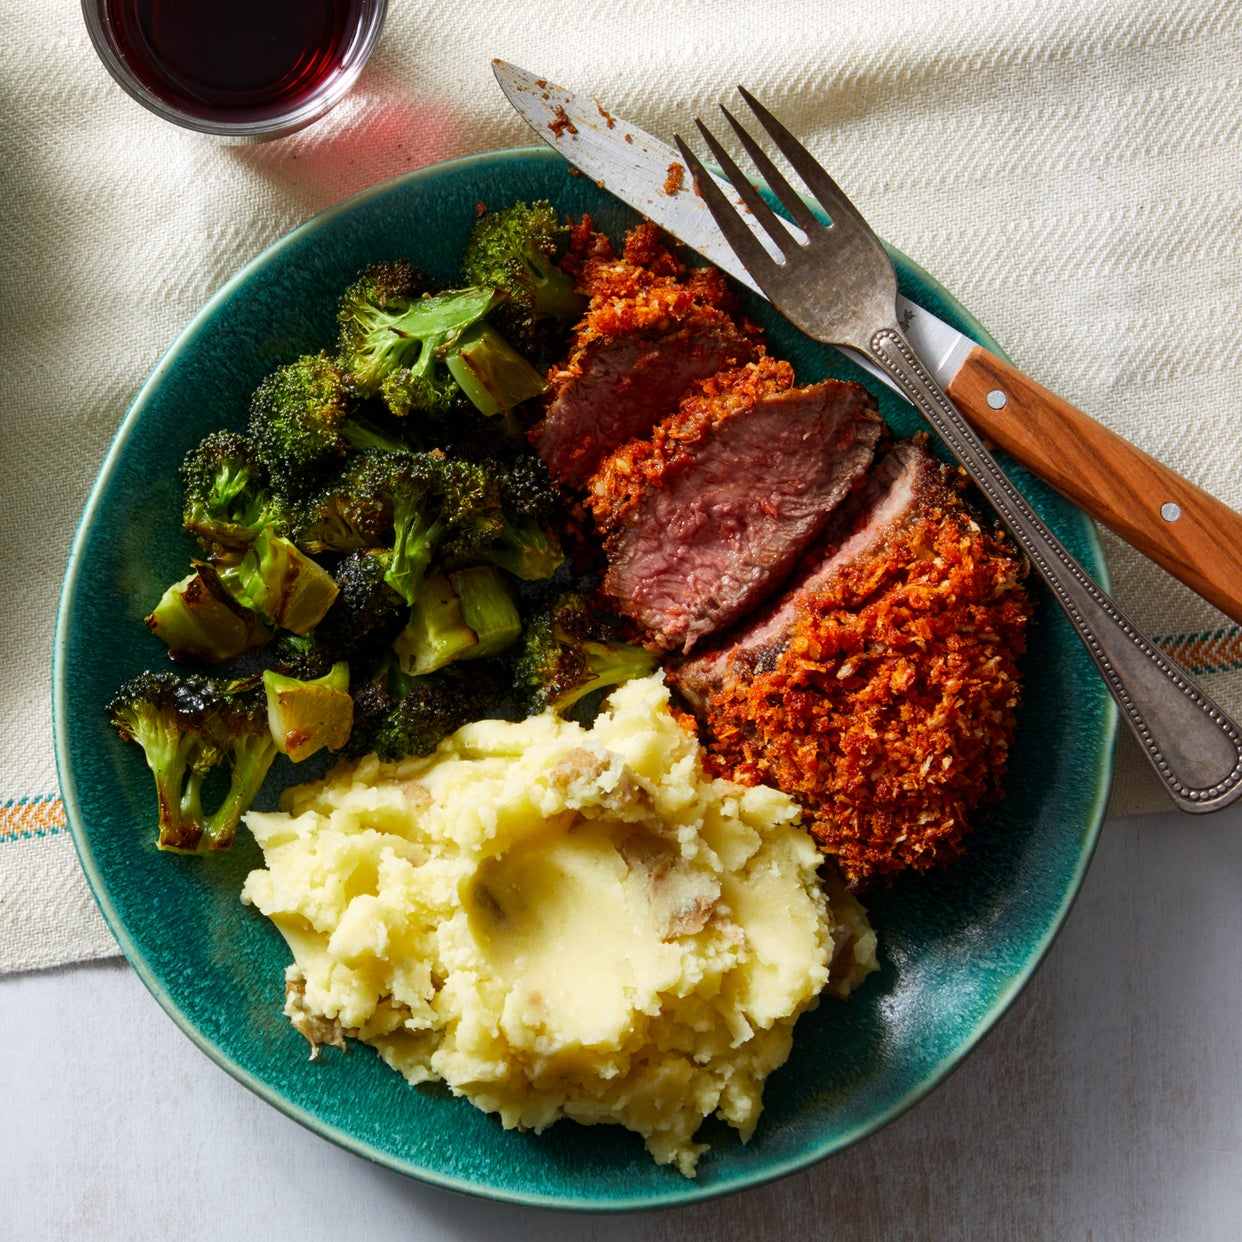 Parmesan-Crusted Steaks with Mashed Potatoes & Broccoli